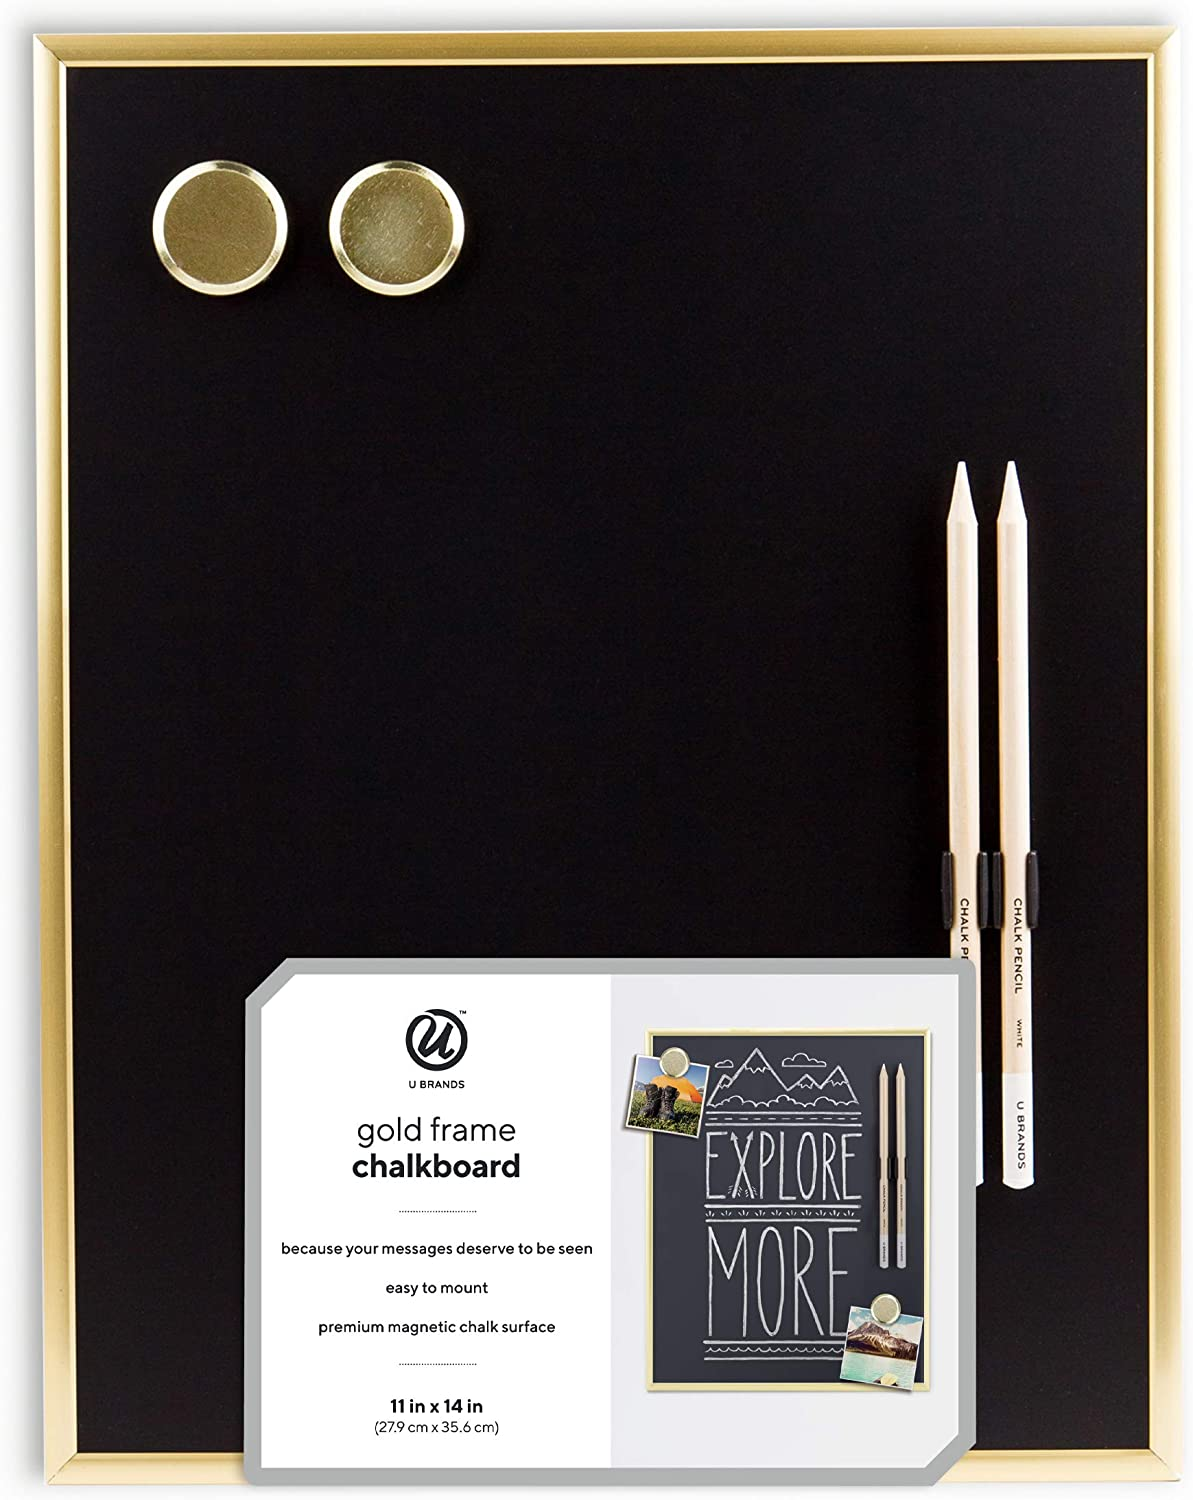 Amazon Com U Brands Magnetic Chalkboard 11 X 14 Inches Gold Metal Frame Markers And Magnets Included 2374u00 04 Office Products